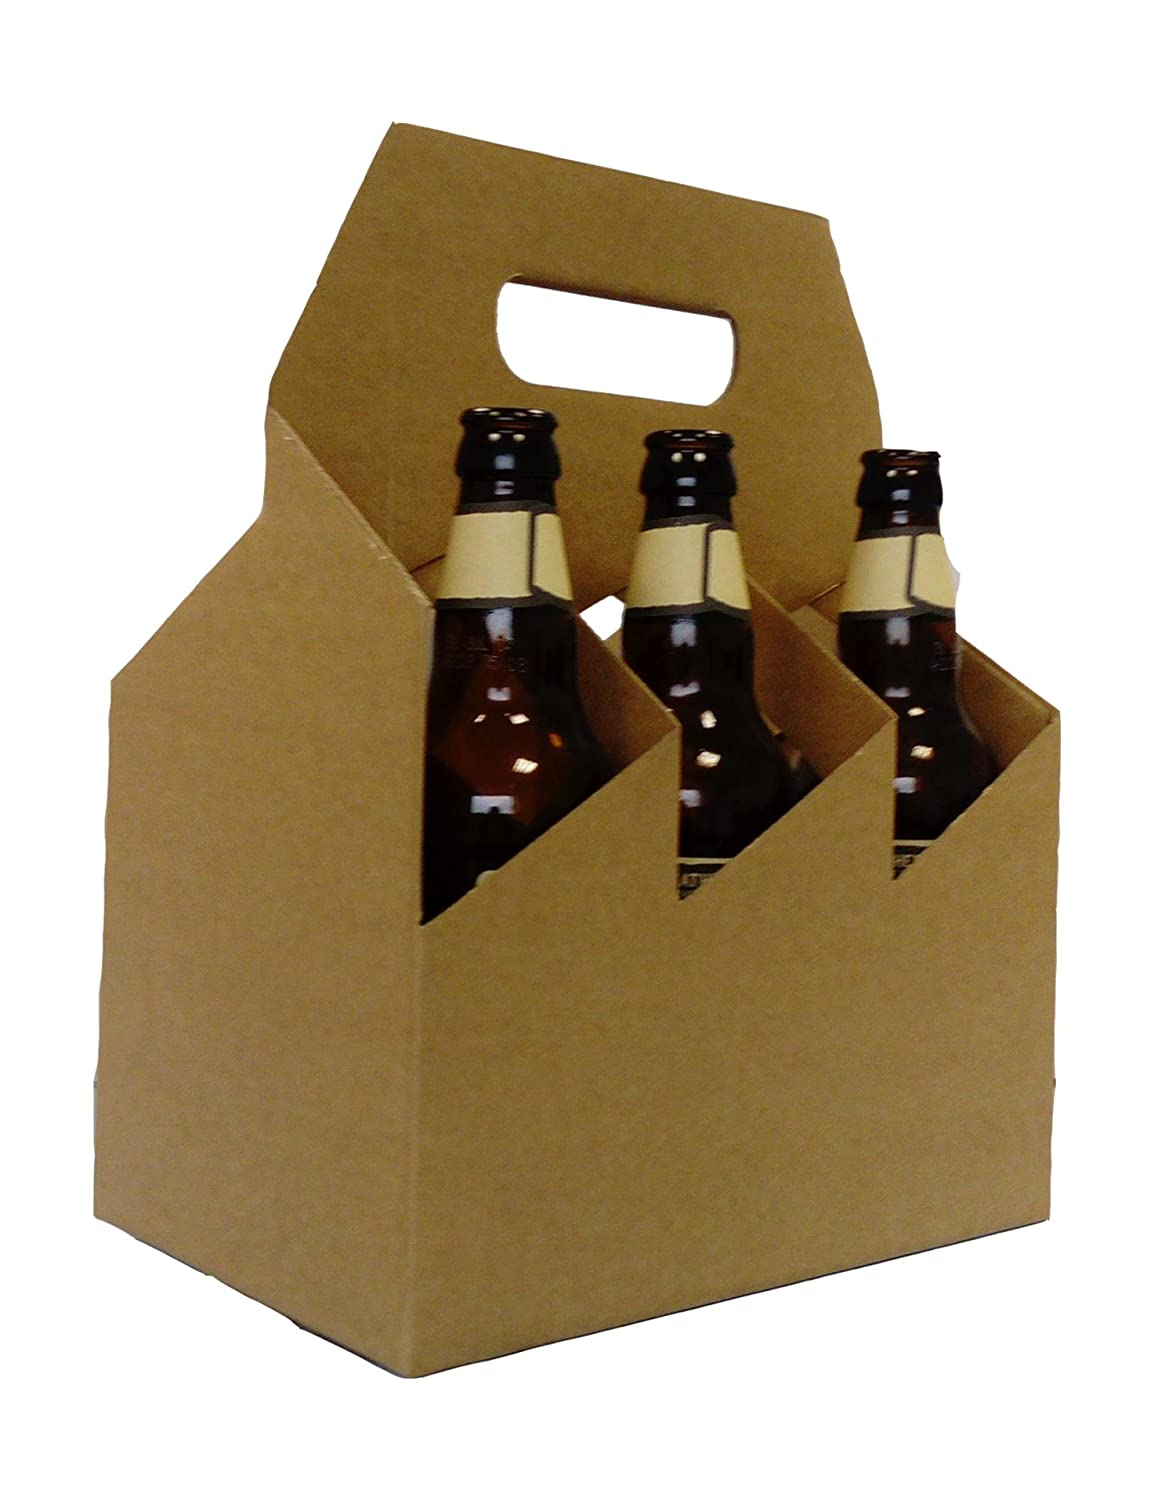 50 x ALE BOTTLE CARRIER (BROWN) Boxes2Go